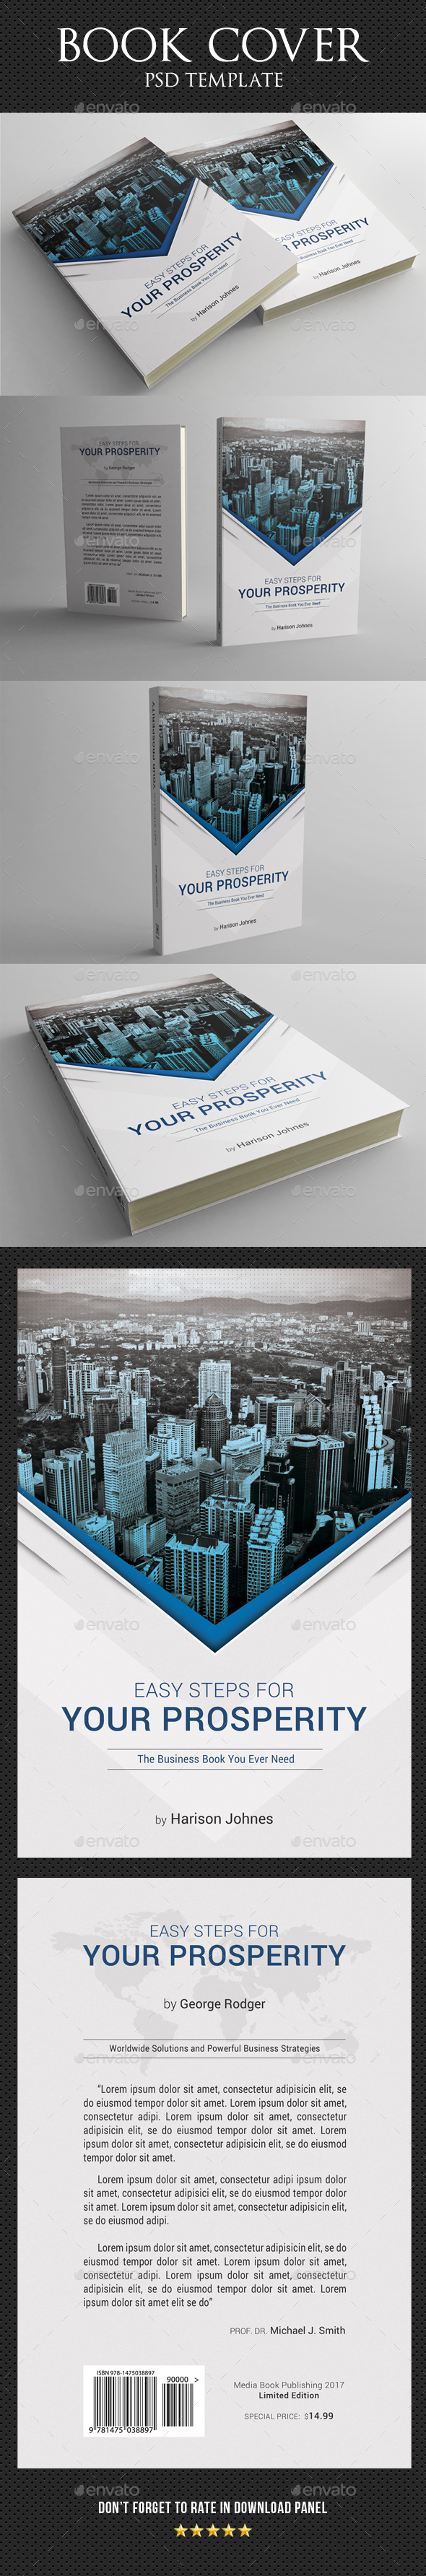 Book Cover Template 31 - Miscellaneous Print Templates